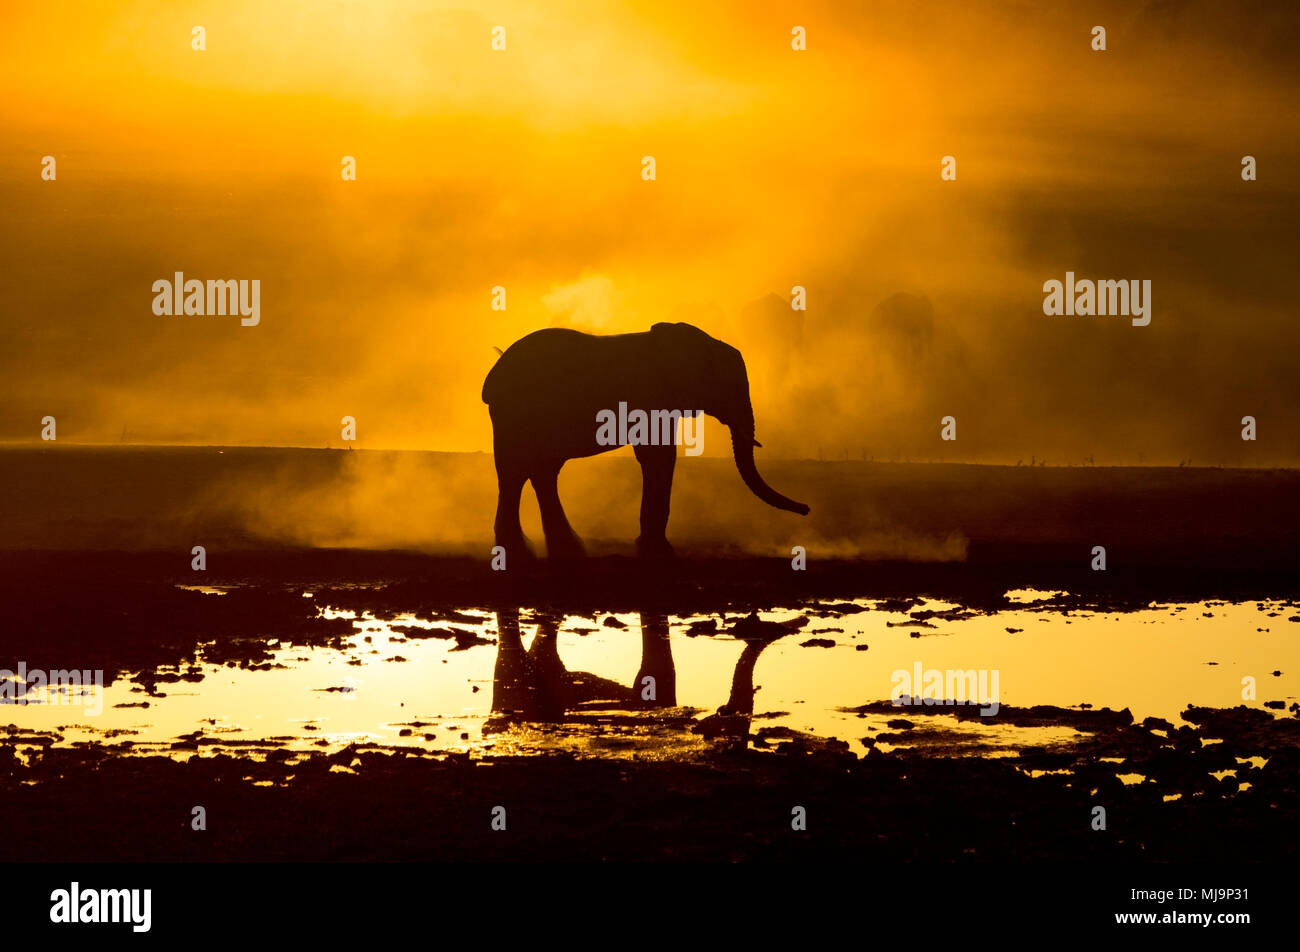 African Elephants silhouetted against the sunset - Stock Image